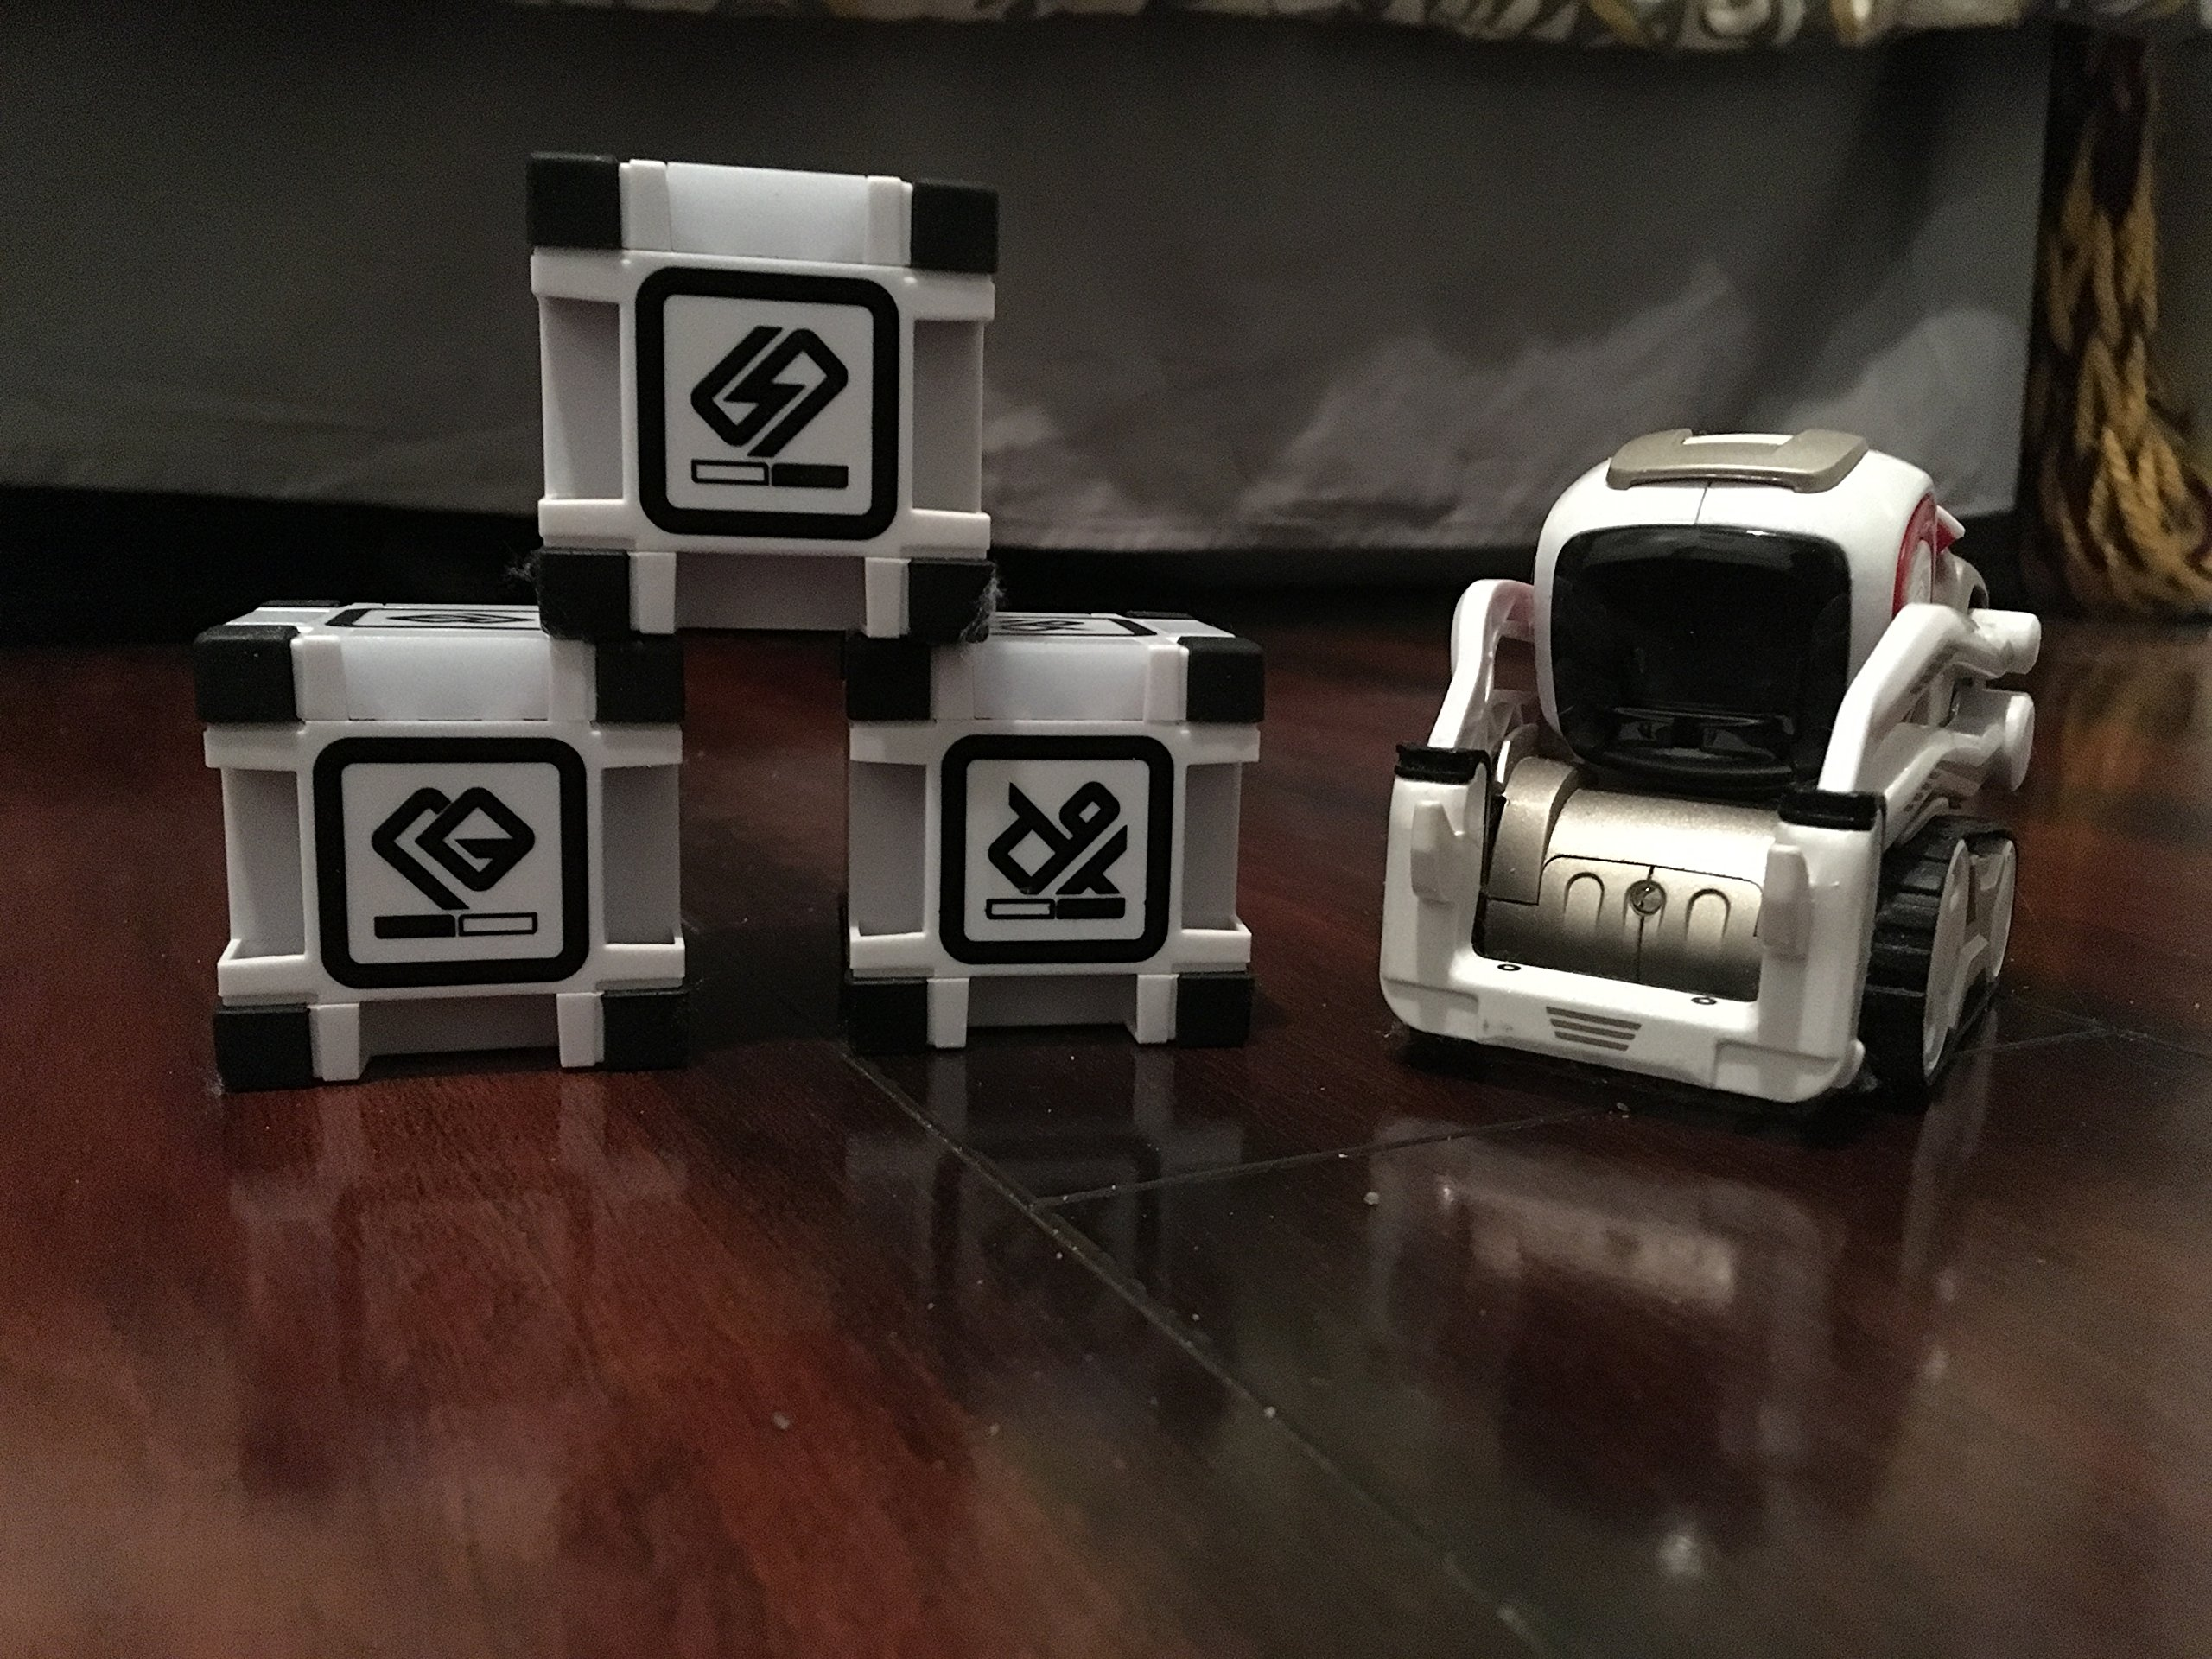 Anki Cozmo Robot with Power Cubes